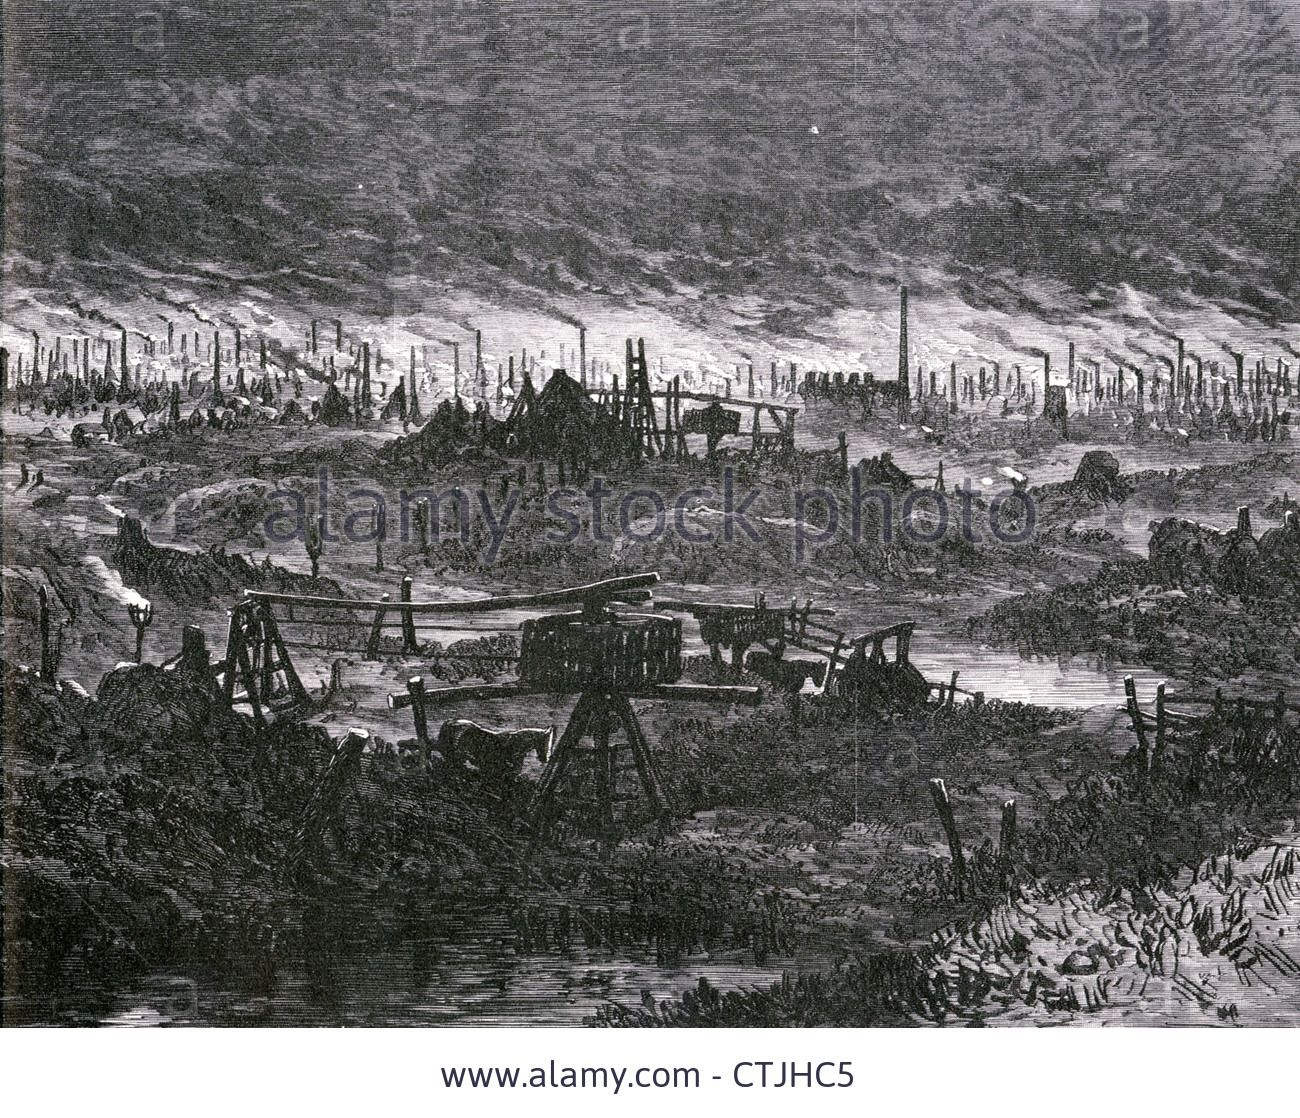 industrial revolution the black country around wolverhampton industrial revolution the black country around wolverhampton england in 1866 stock photo